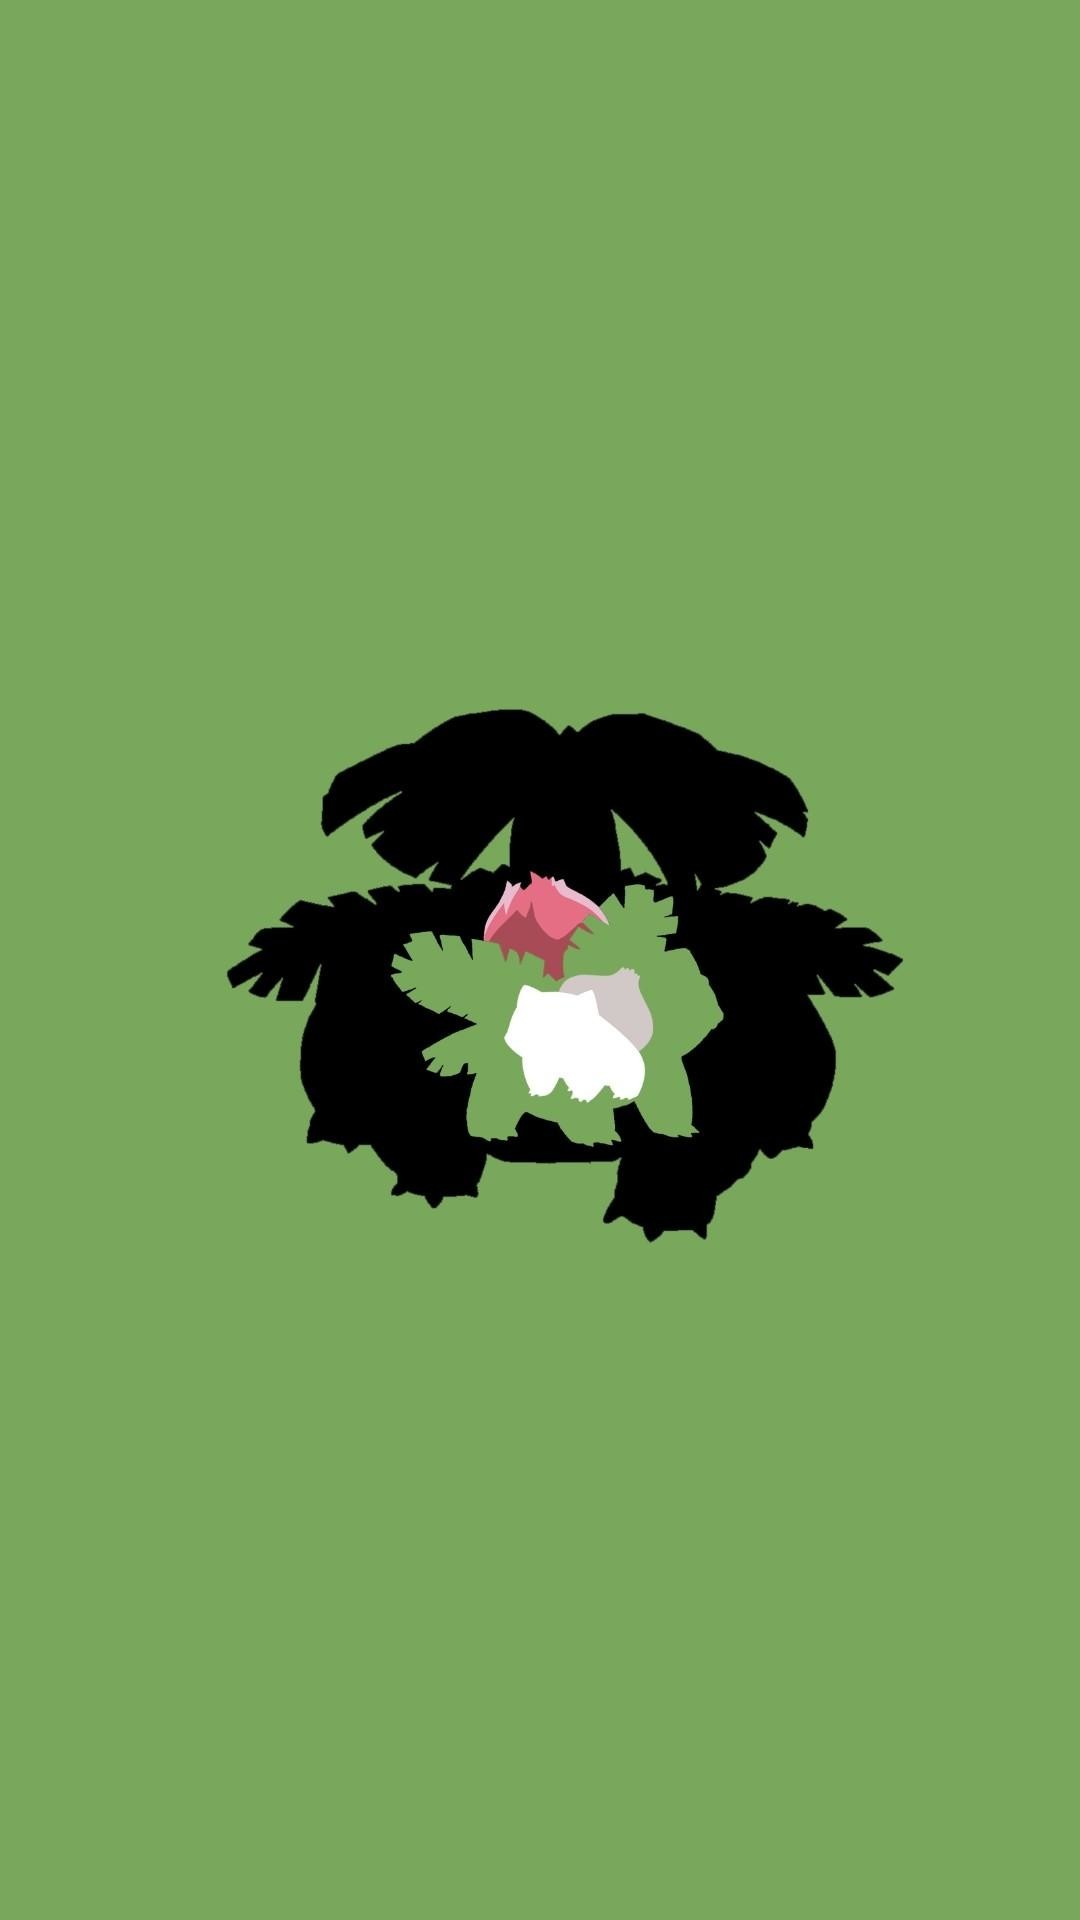 Res: 1080x1920, Bulbasaur Evolution Wallpaper [1080×1920] ...